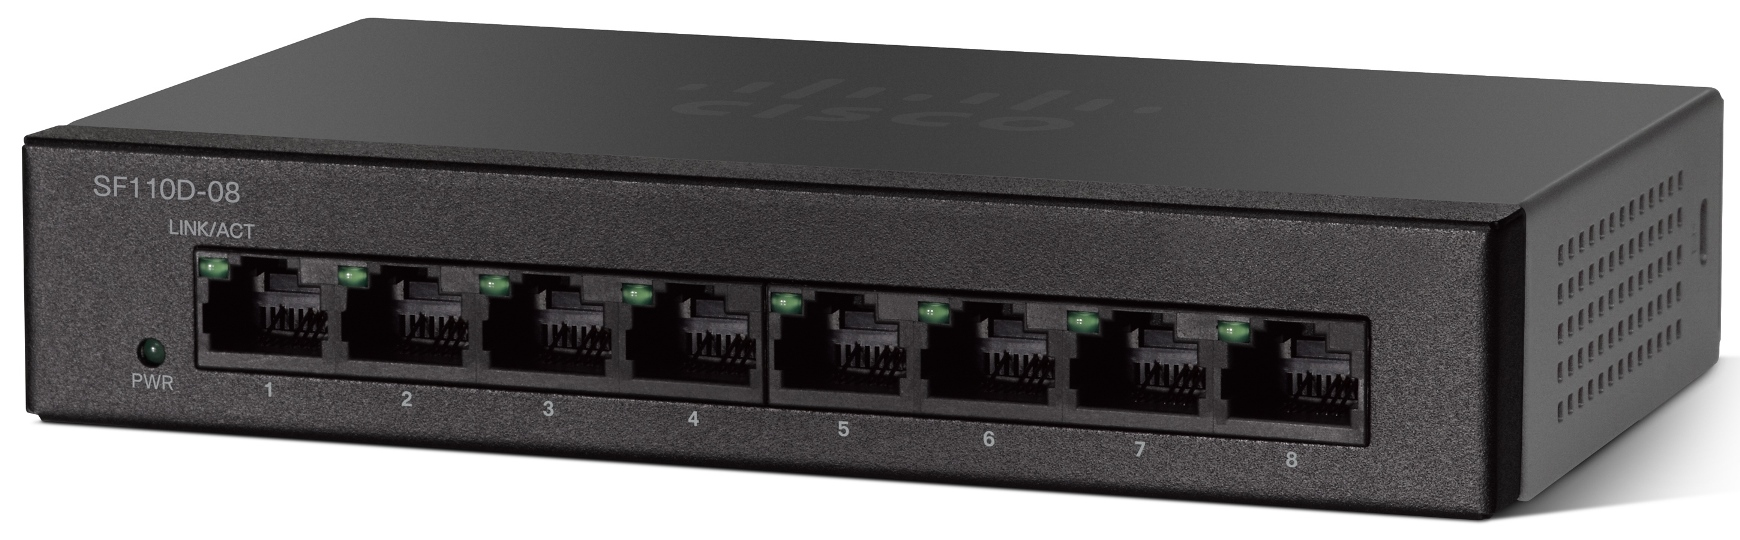 Cisco SF110D-08-EU, 8x10/100 Desktop Switch